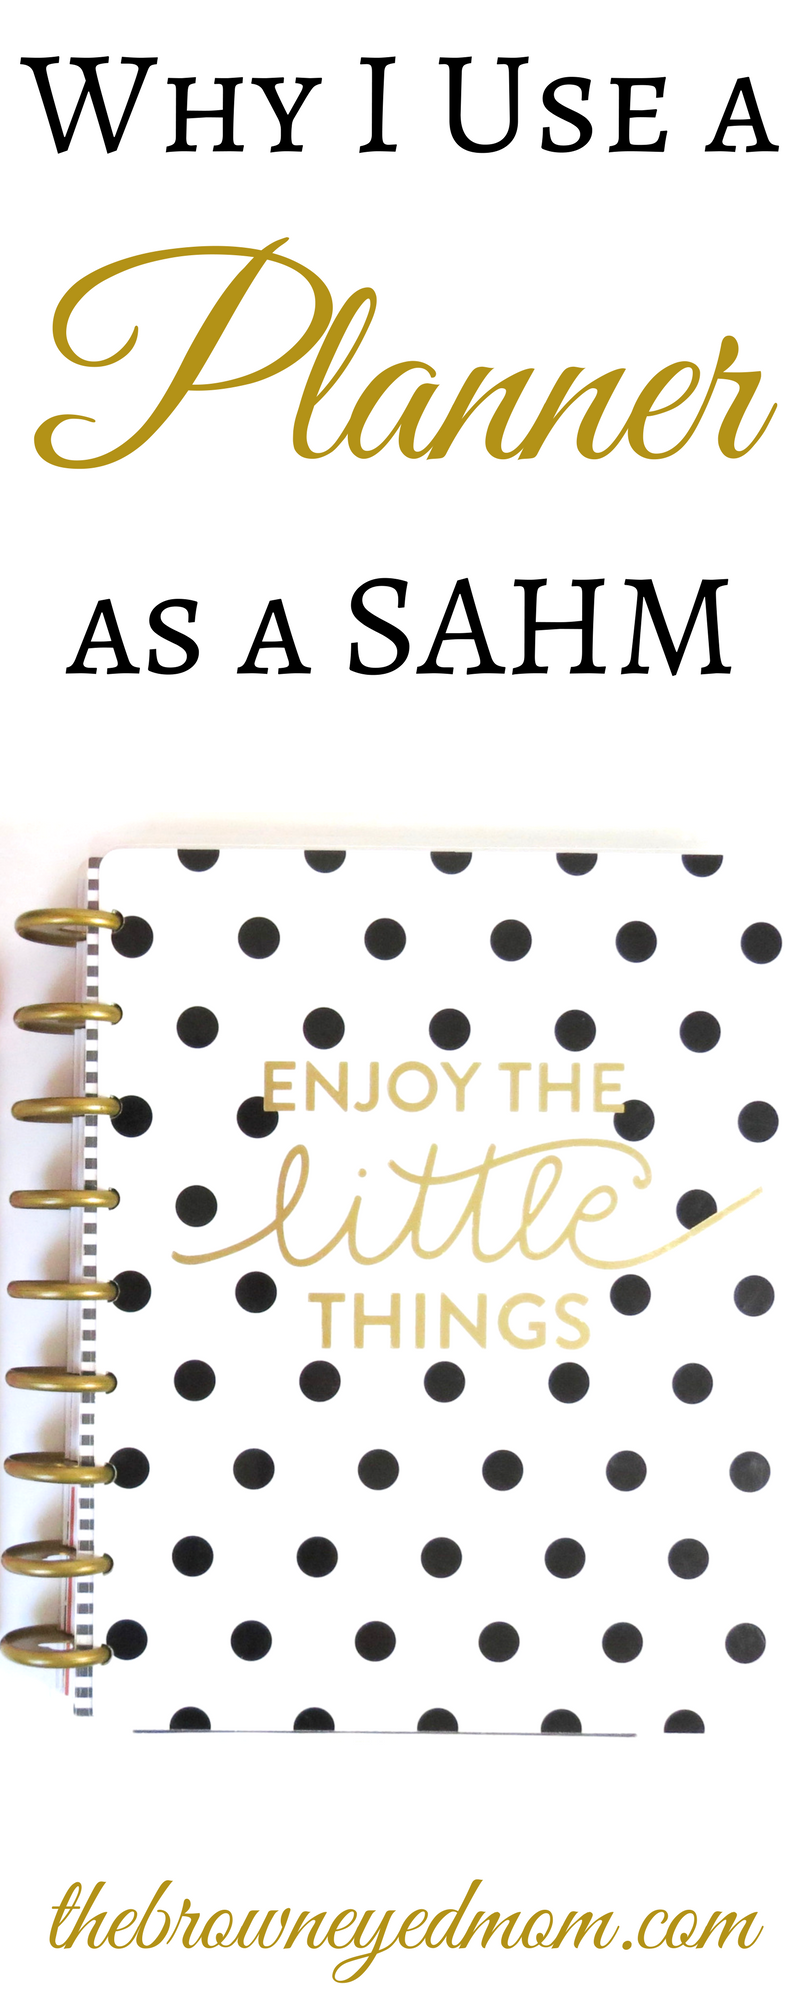 As a SAHM, who is also a blogger, I need to keep my life organized. That's why I have to use a planner, even as a SAHM! #sahm #momblogger